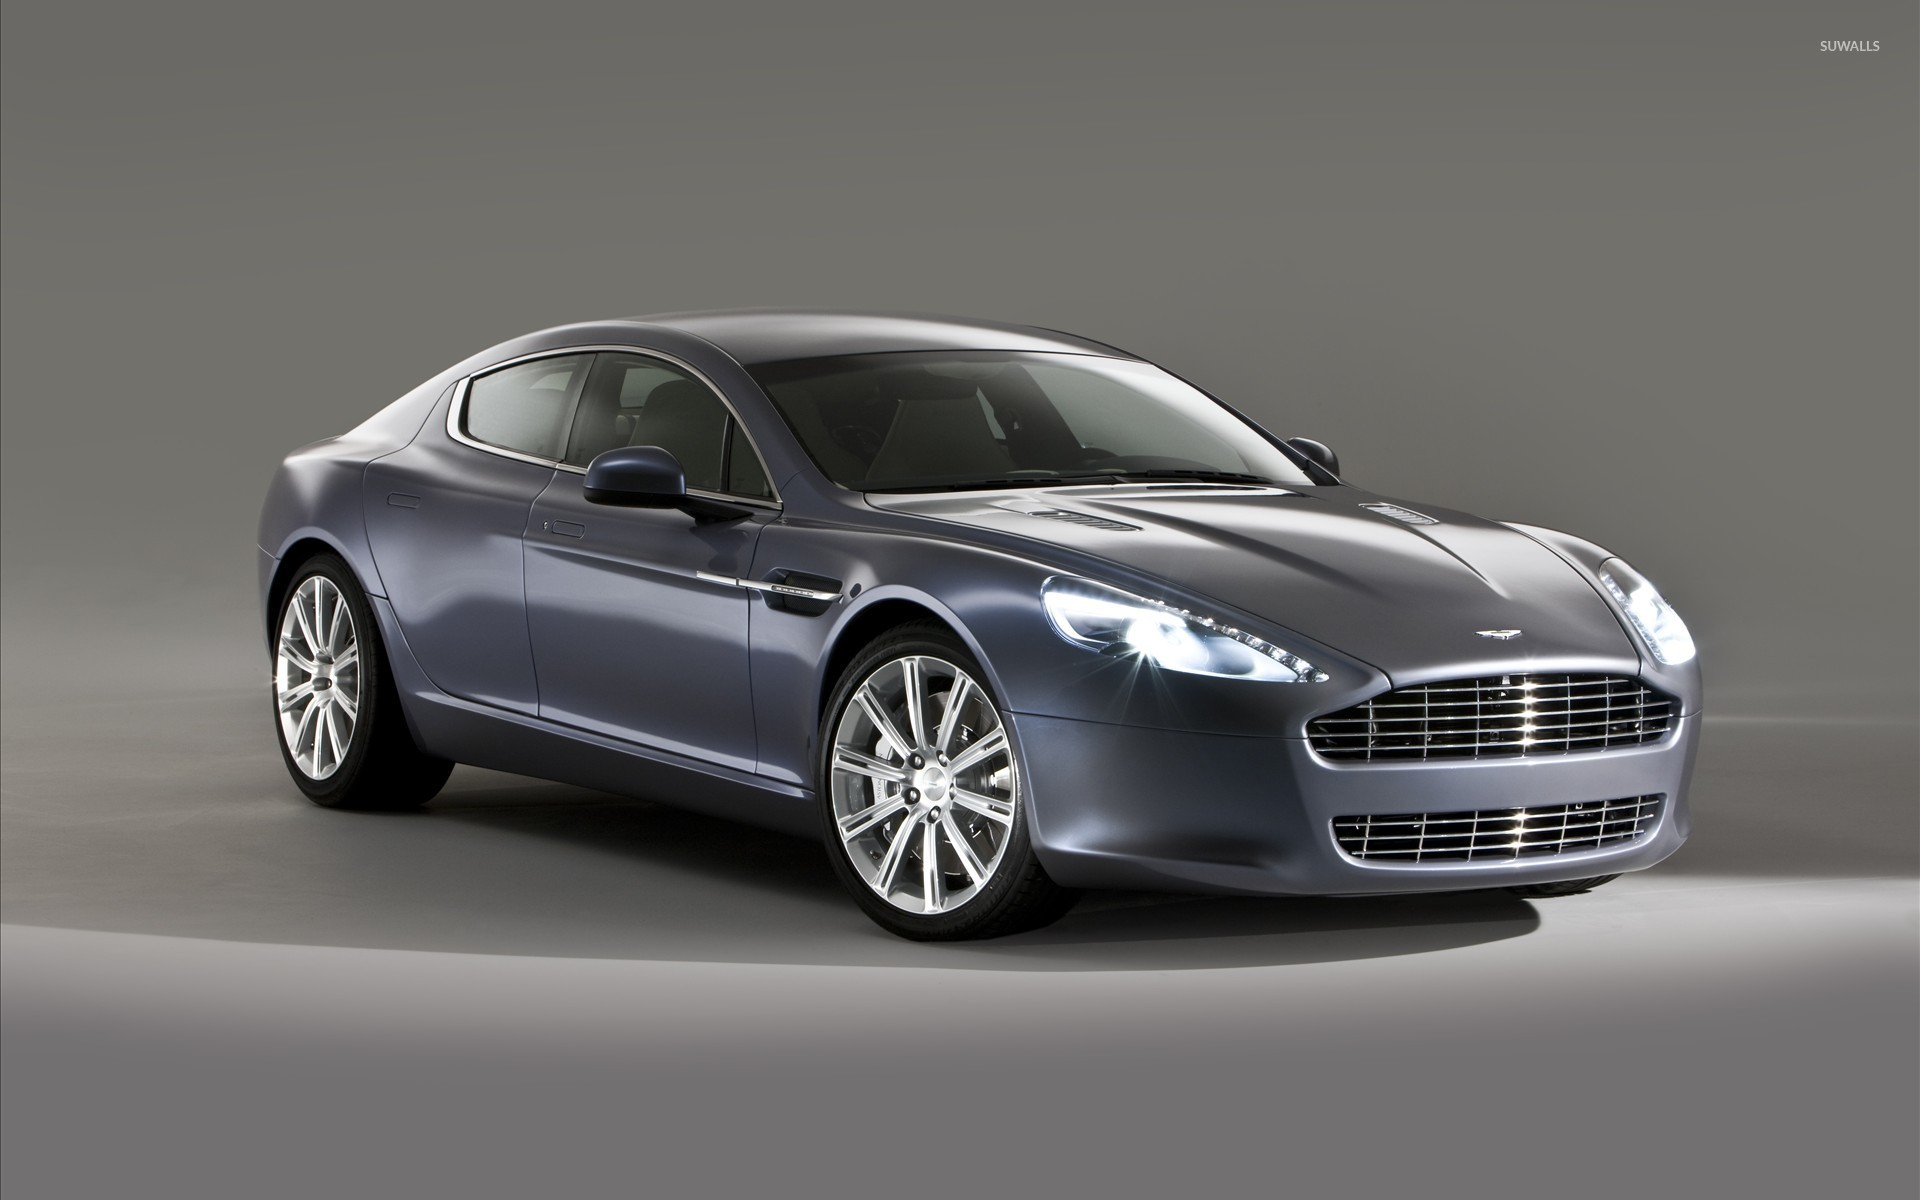 Silver Aston Martin Rapide With Headlights On Wallpaper Car - Aston martin headlights